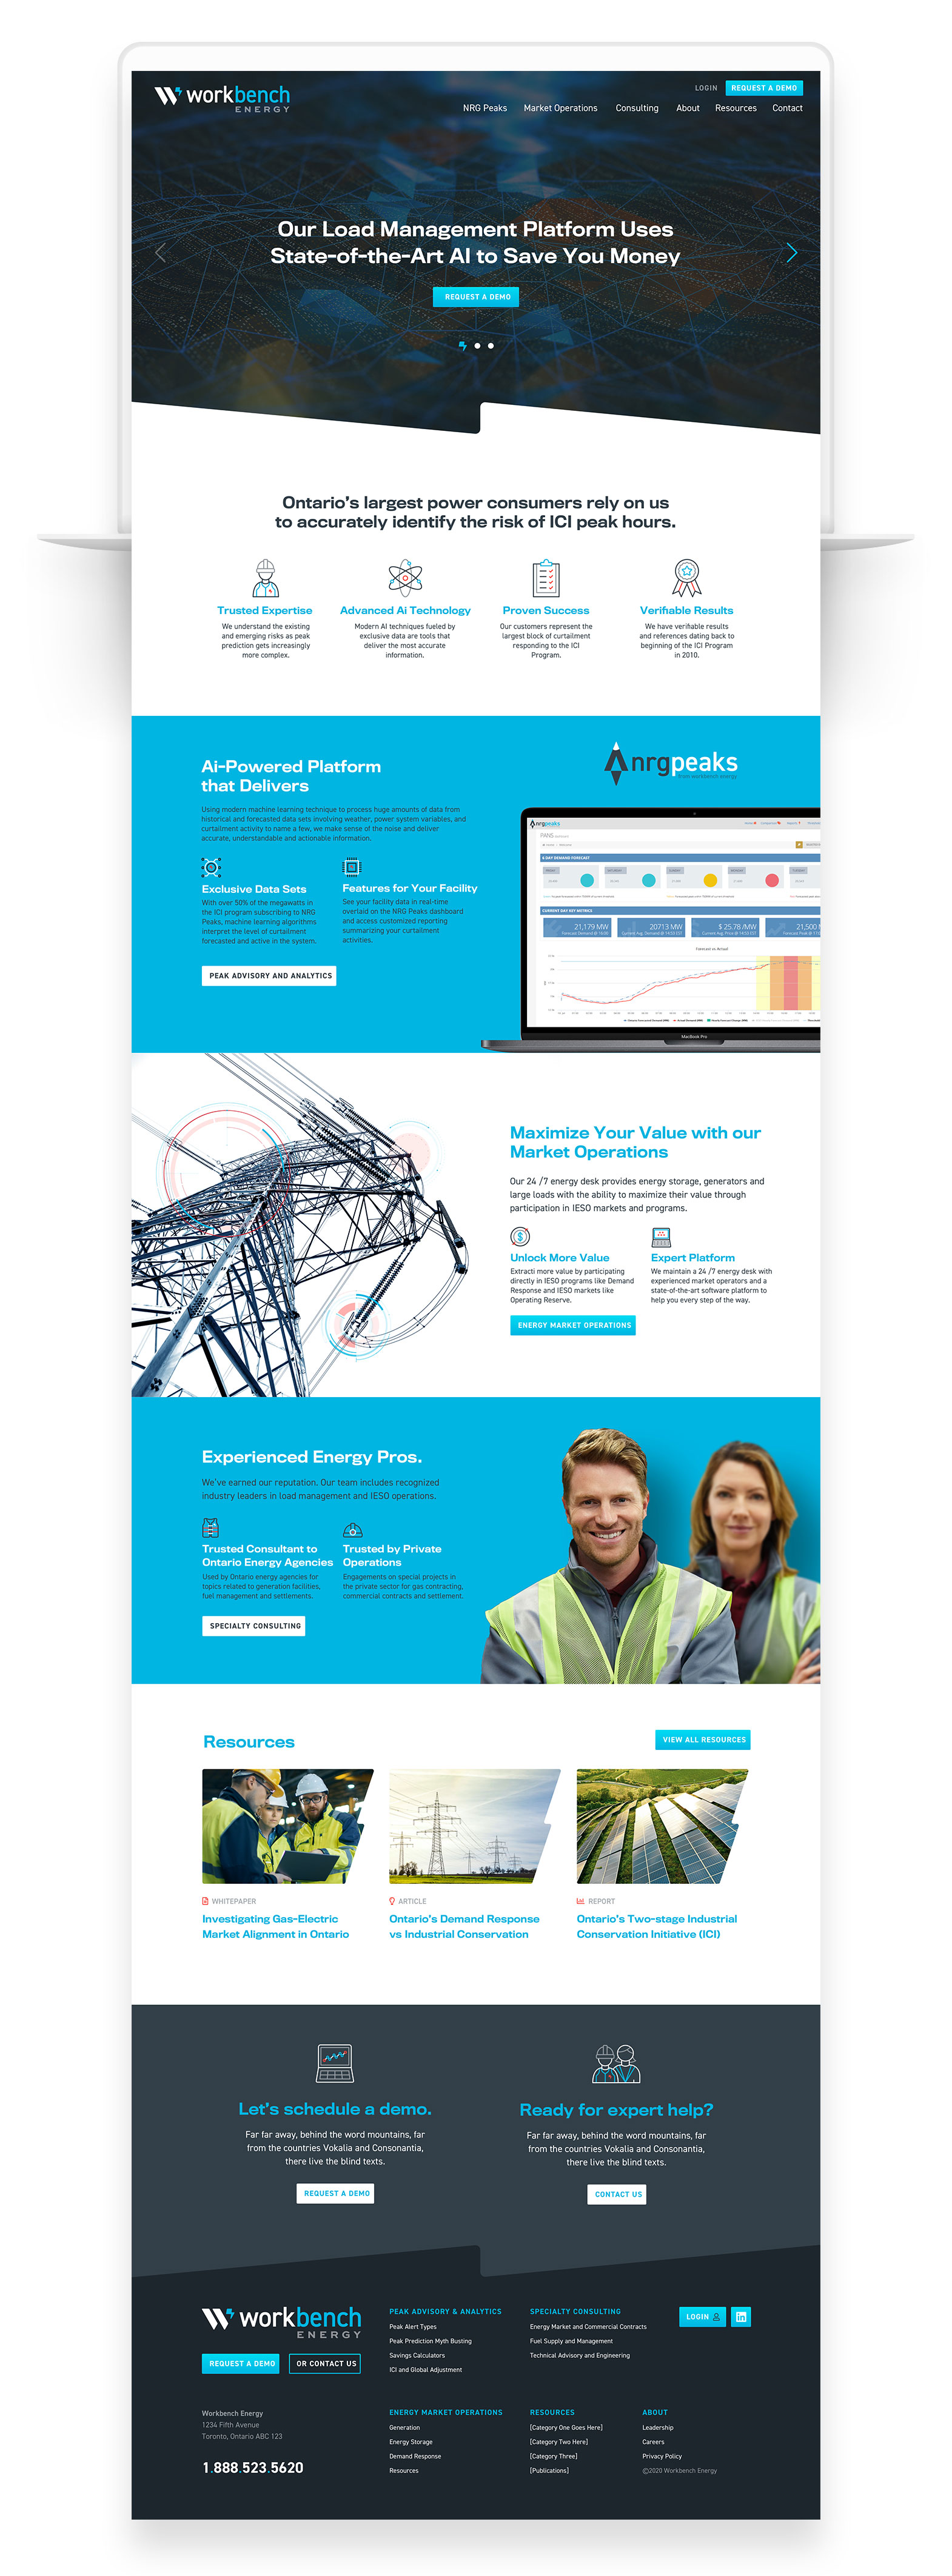 Web Design & Development for Industrial Companies - Workbench Energy